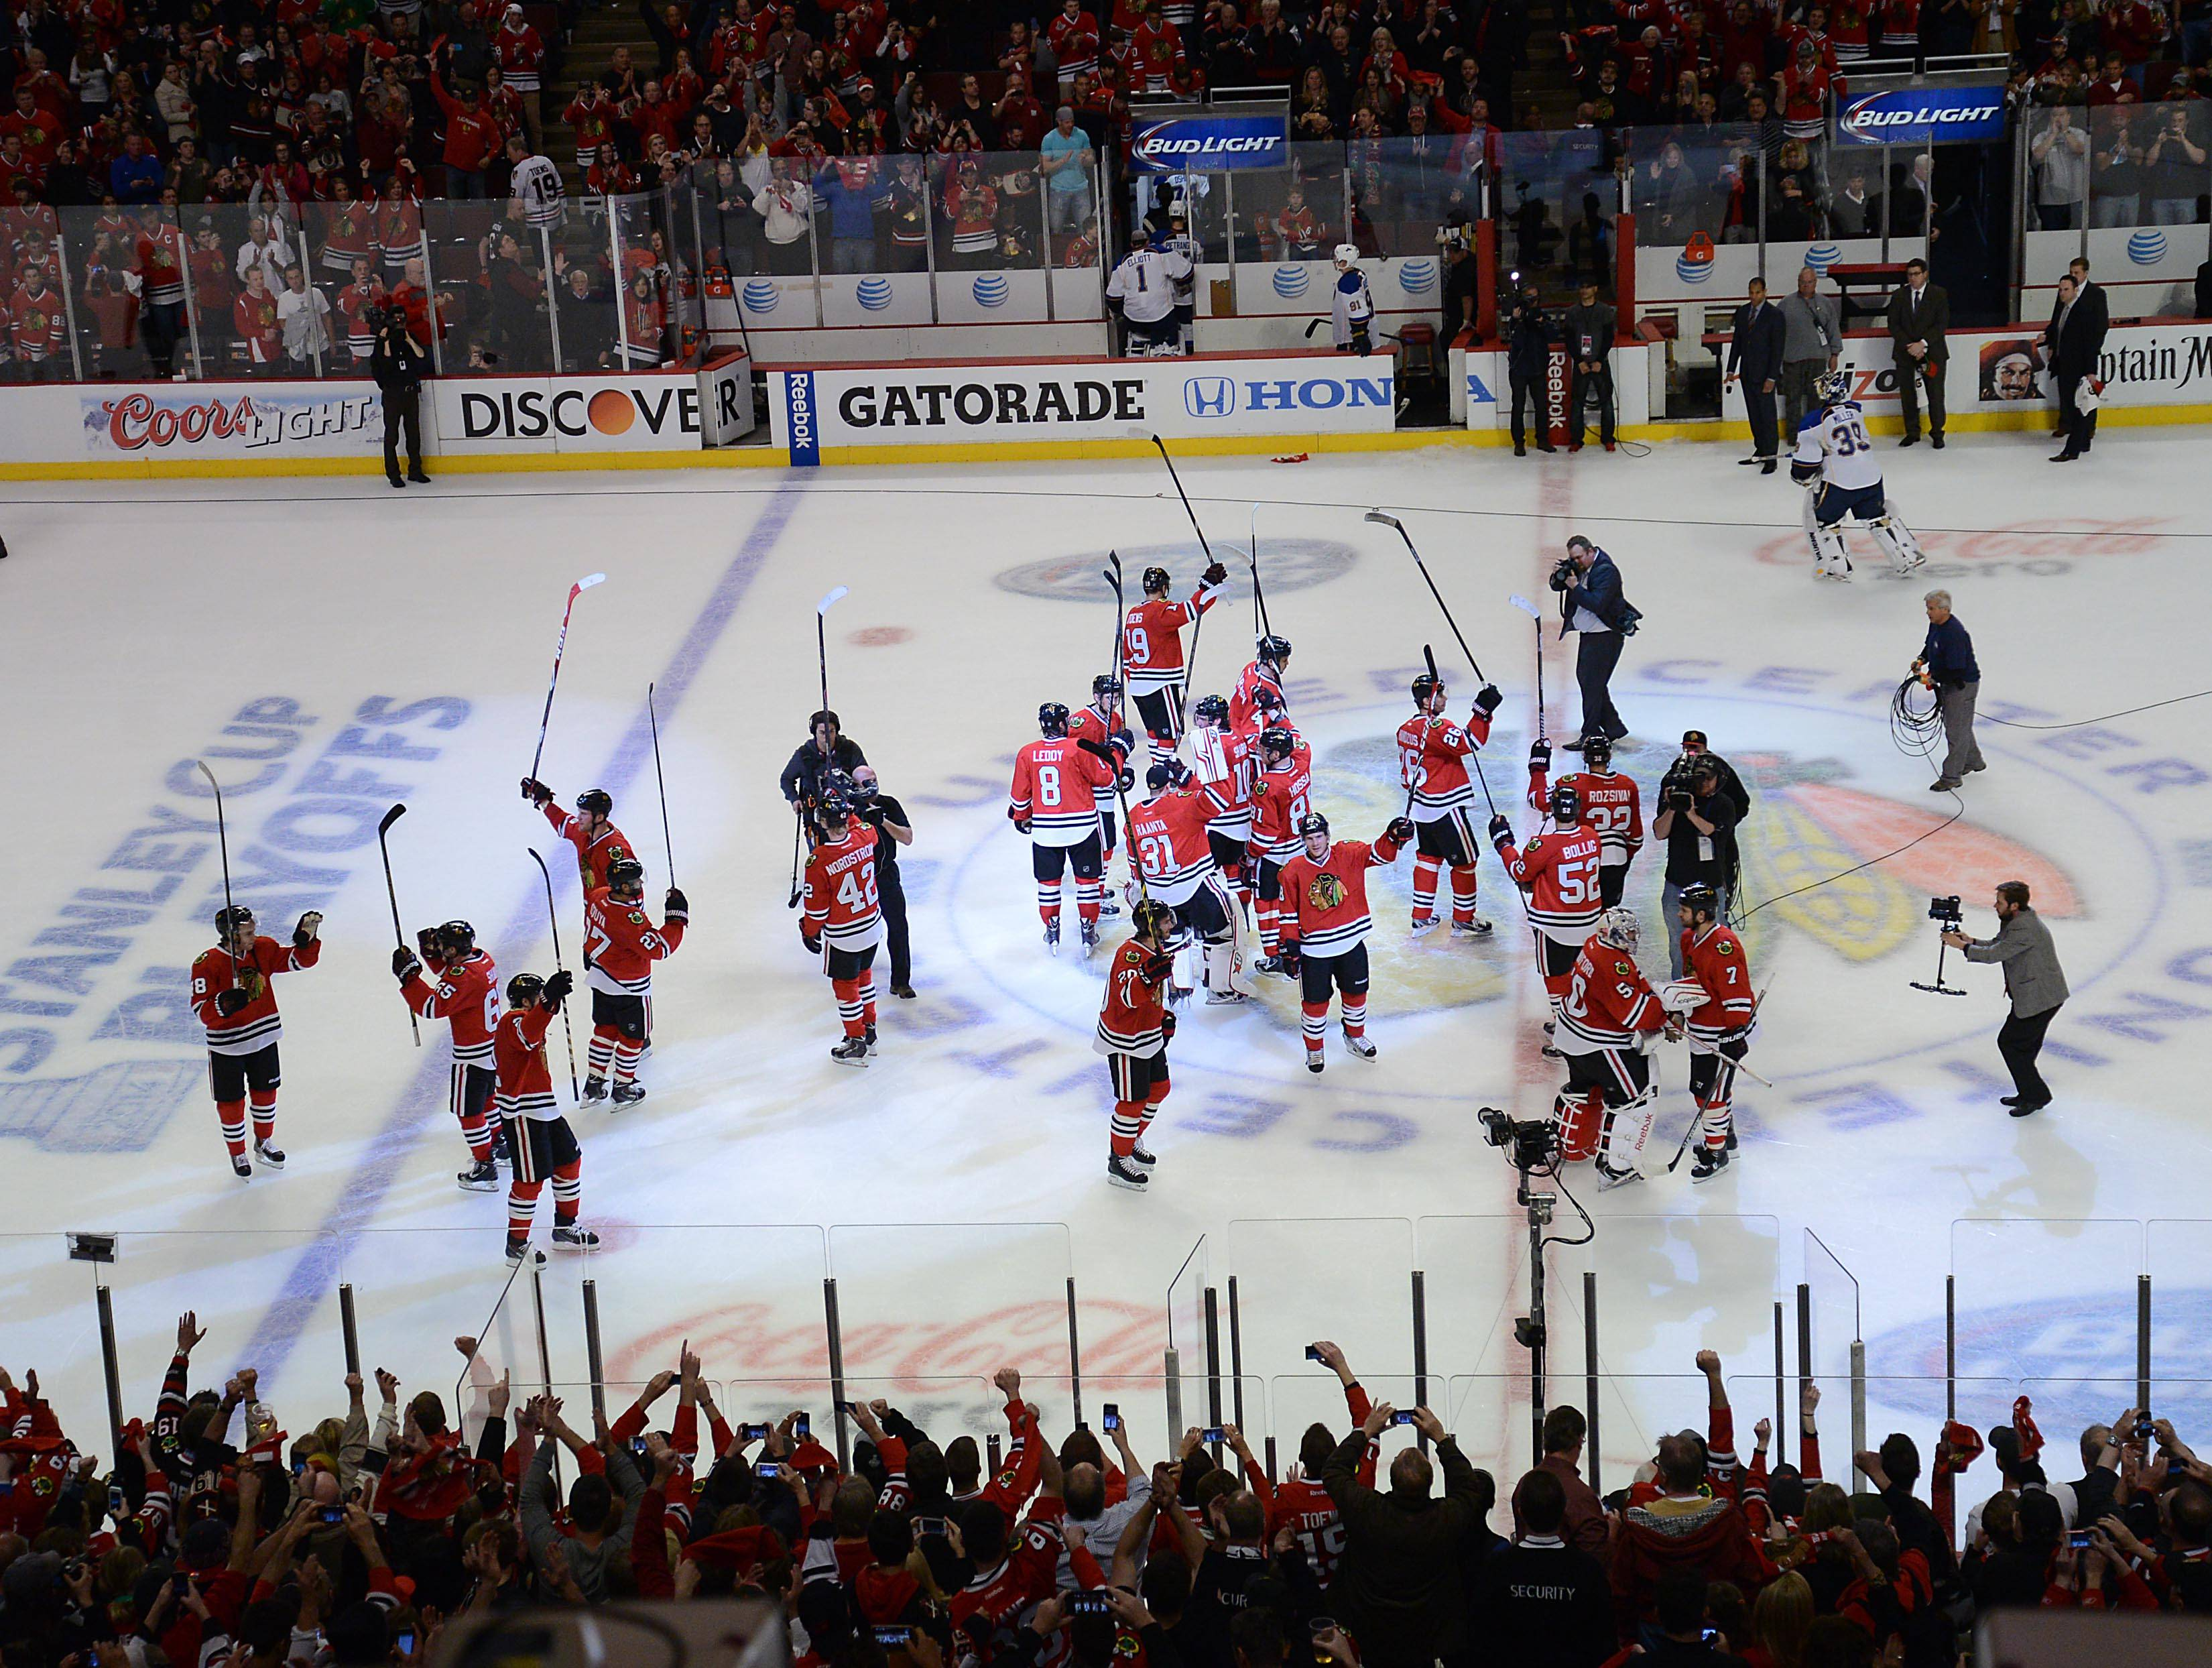 The Blackhawks raise their sticks to thank the crowd Sunday after beating the St. Louis Blues in Game 6 of the NHL first round playoffs at the United Center in Chicago. Chicago will advance to the second round.